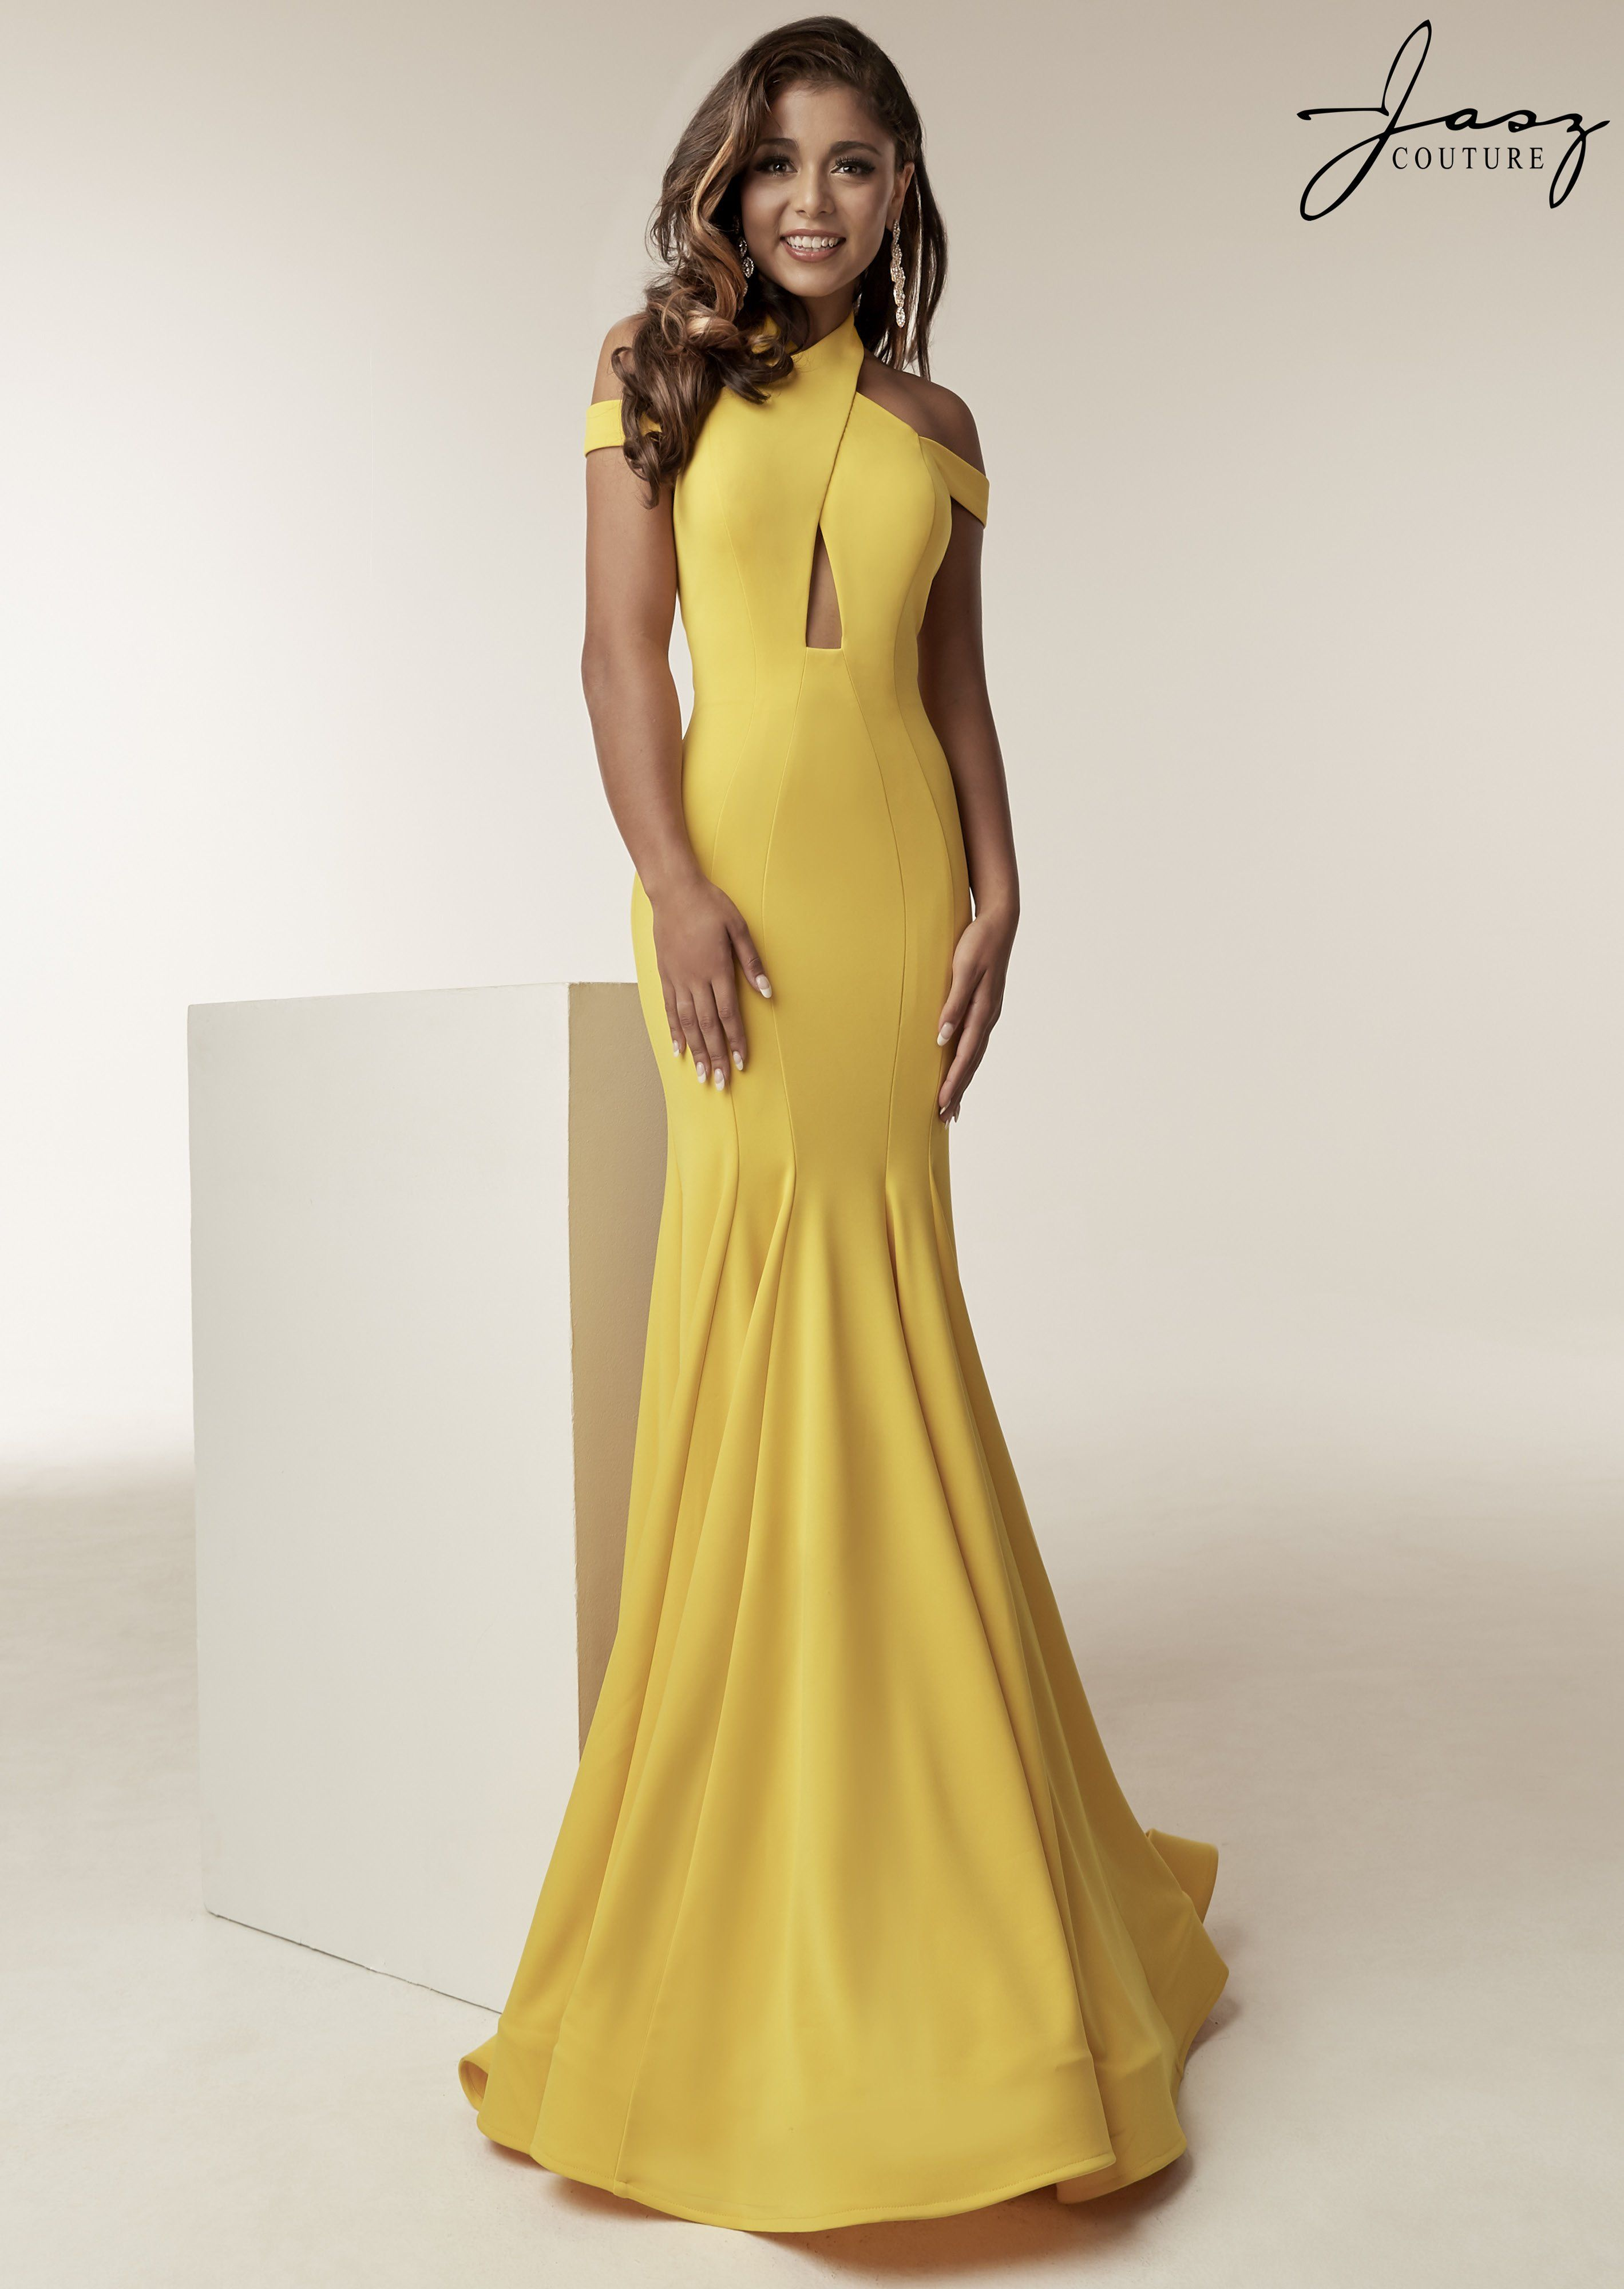 f08fcde48438 Jasz Couture 6238 Yellow High Neck Off the Shoulder Fit and Flare Prom Dress